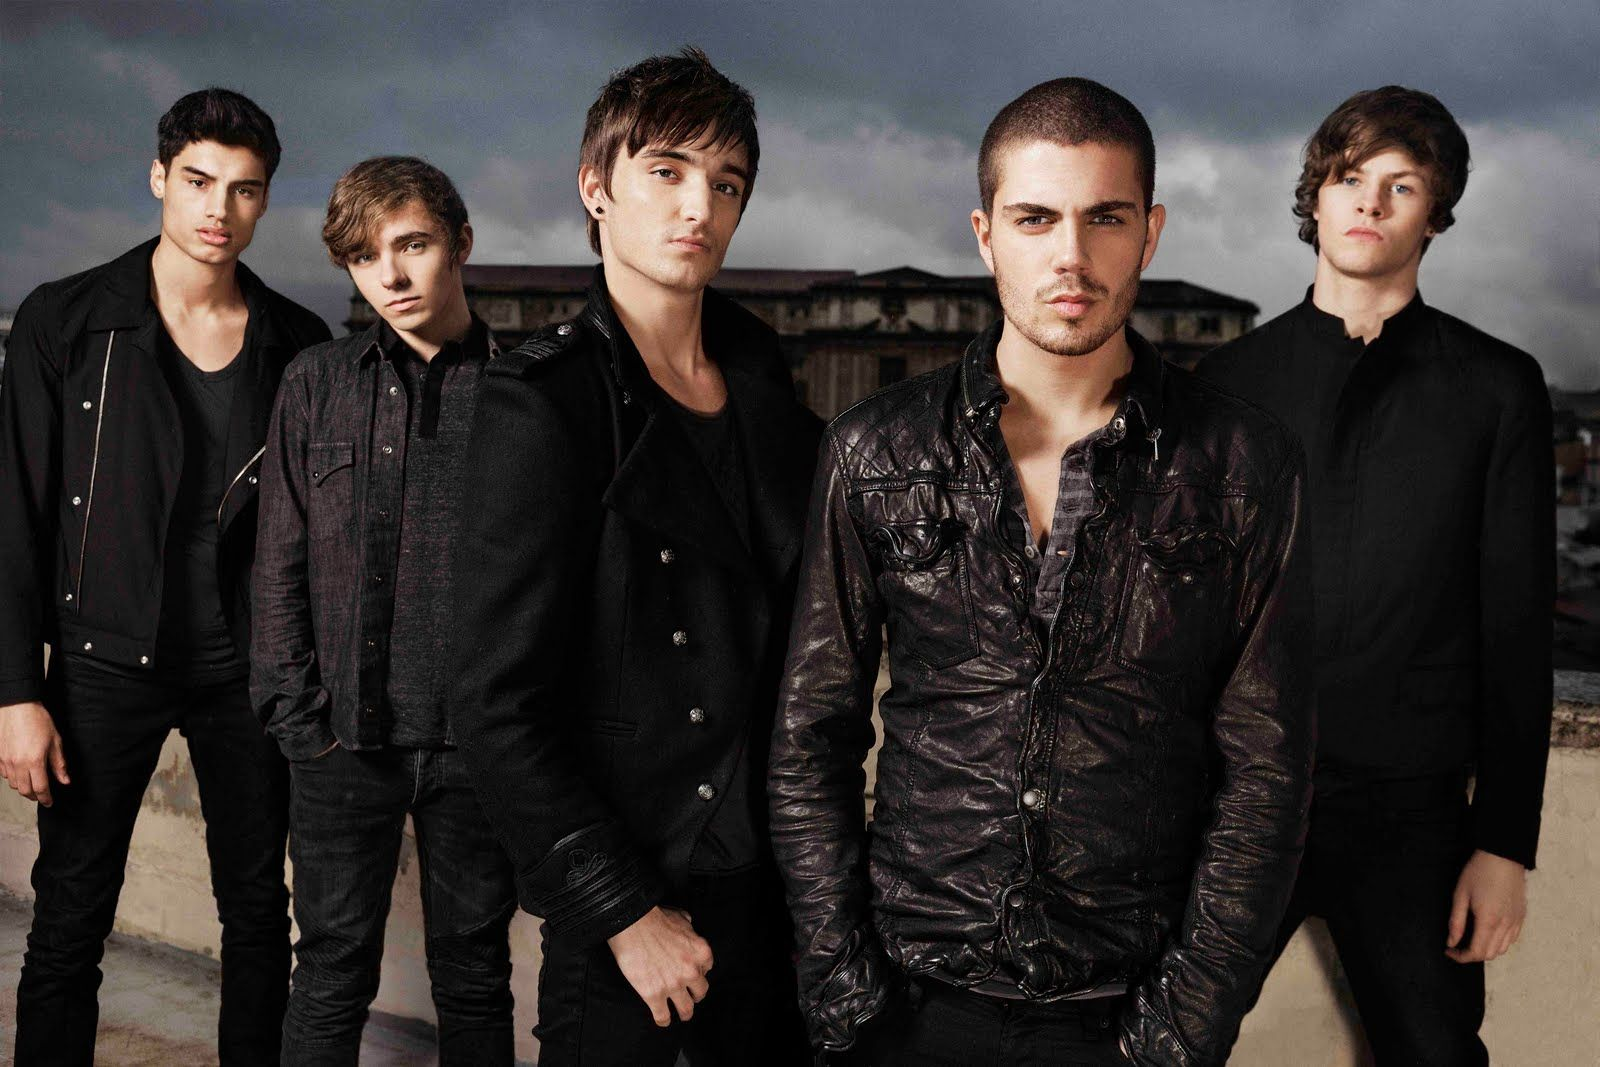 The Wanted Photo The Wanted The Wanted Band Boy Bands Soundtrack To My Life